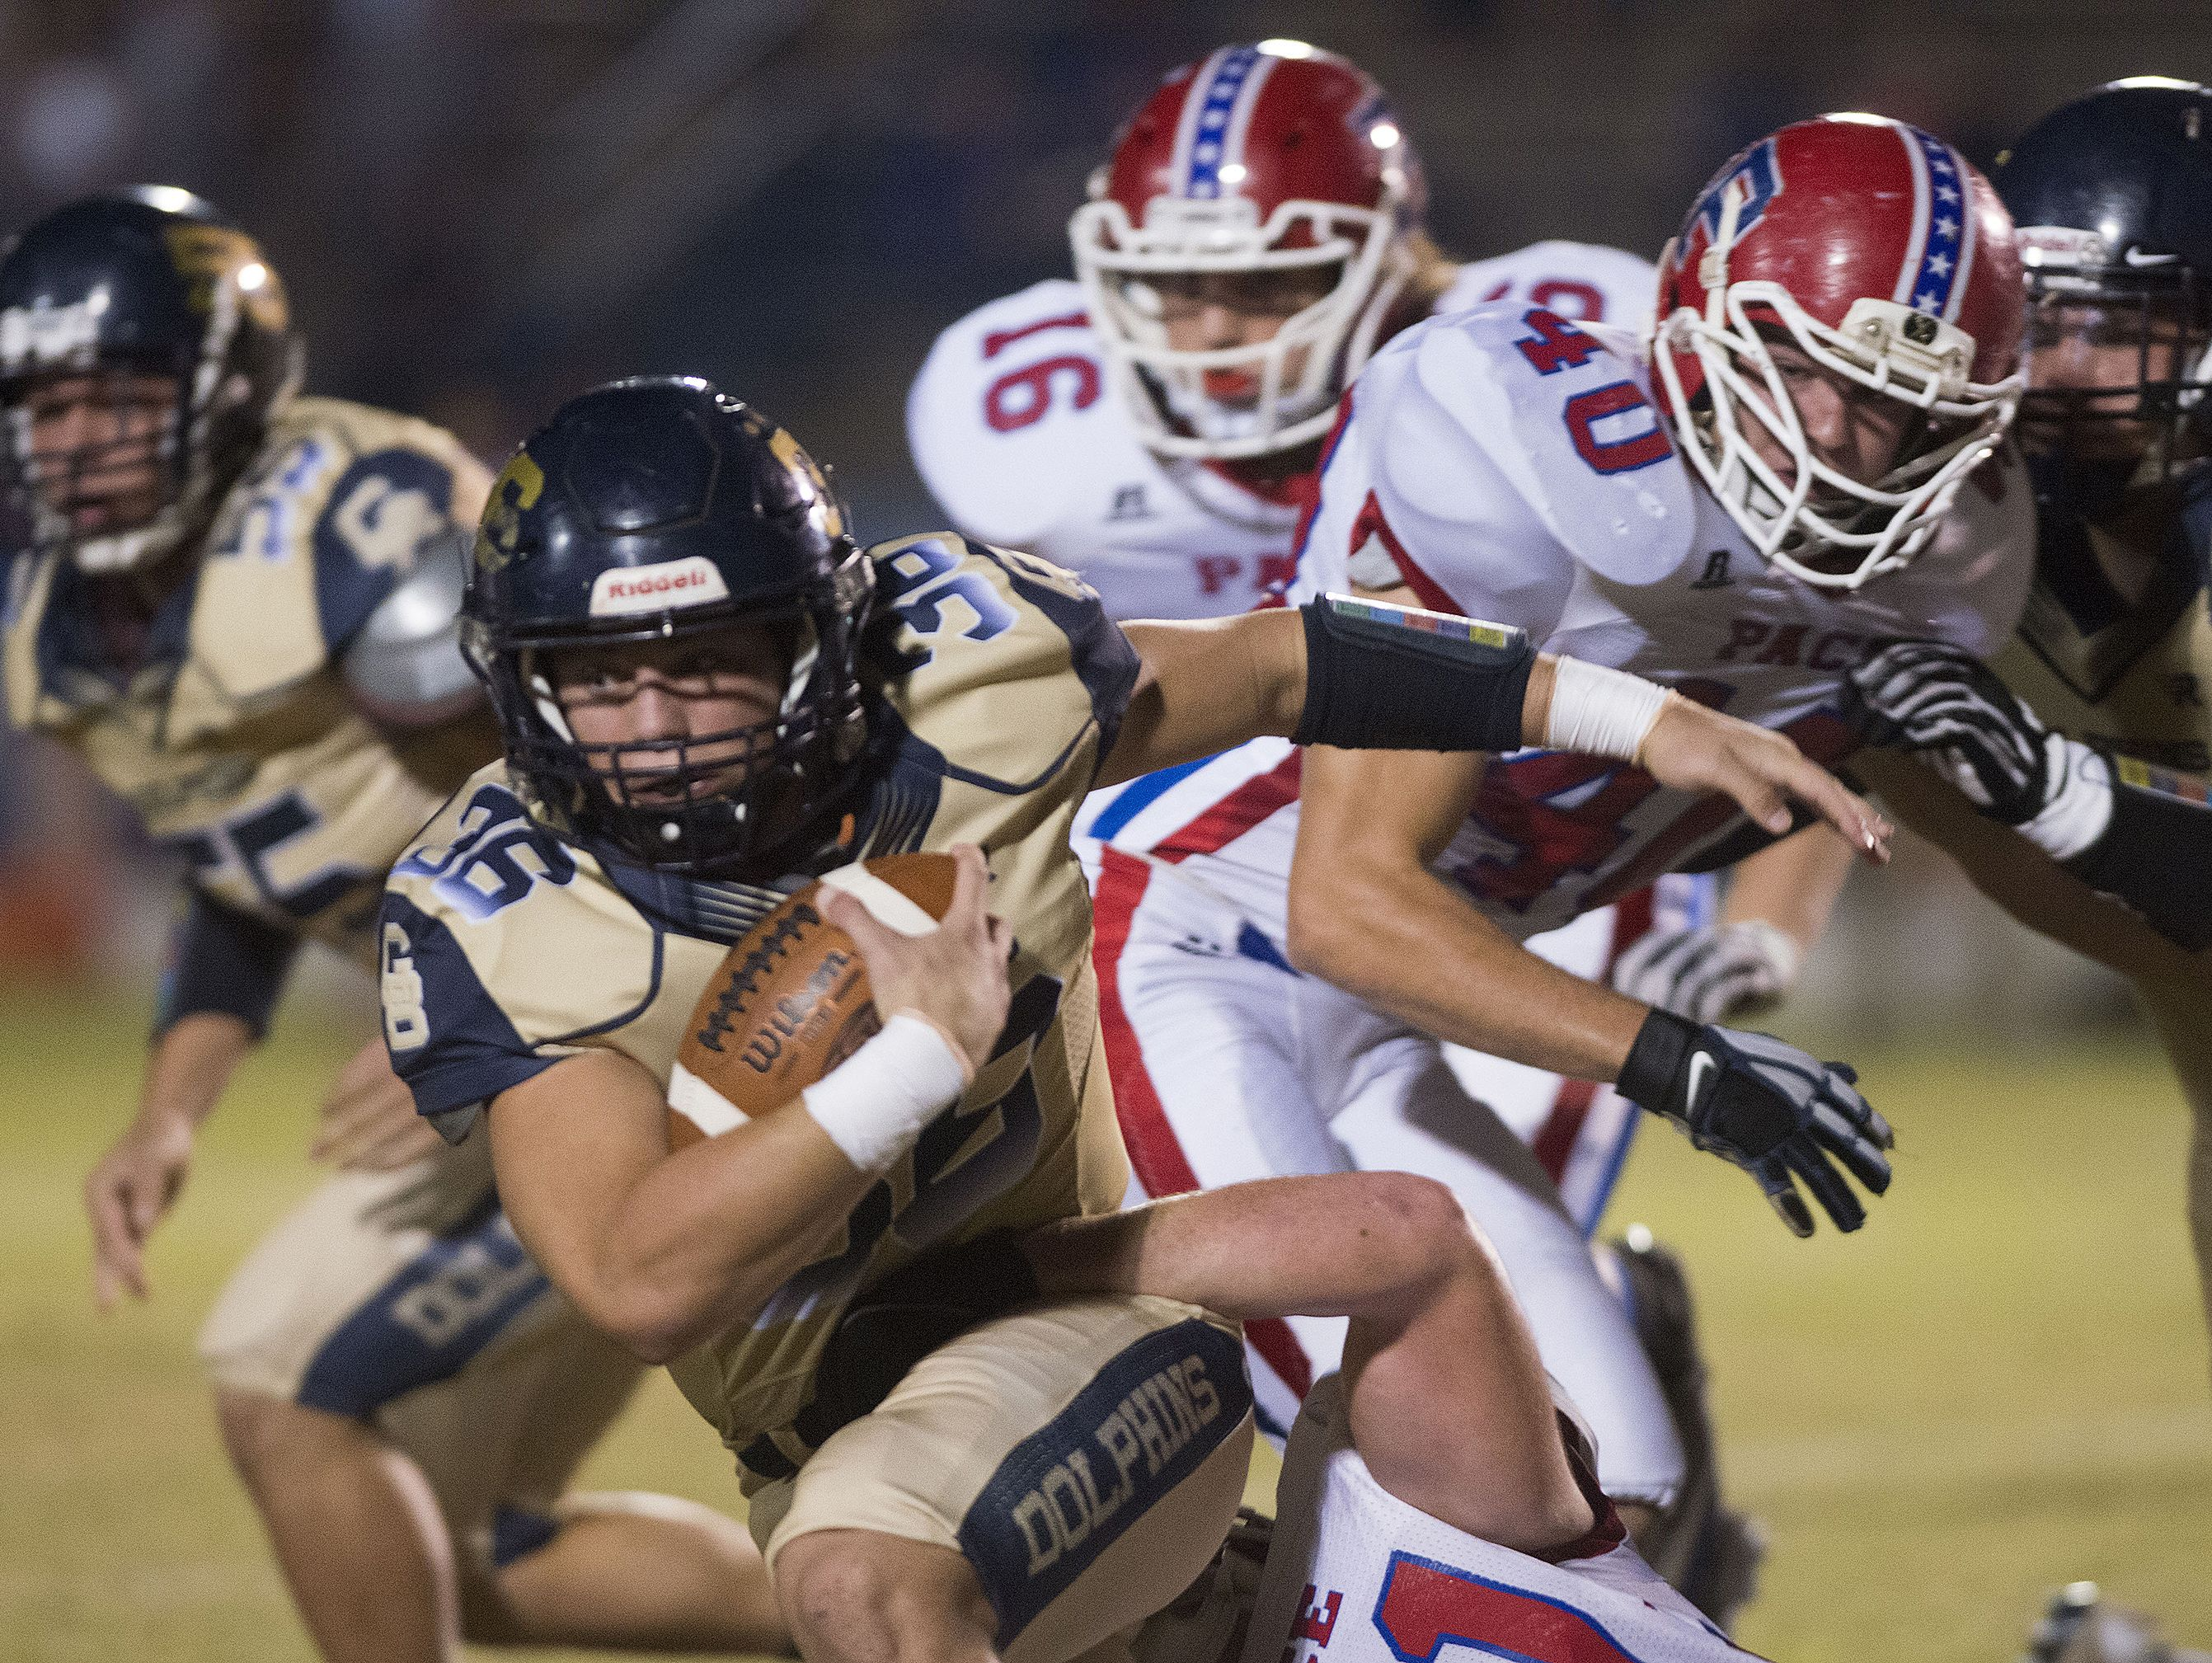 Gulf Breeze running back, Tyler Dittmer, (No. 36) gets wrapped by the Pace defense during Friday night's District-2 6A game.